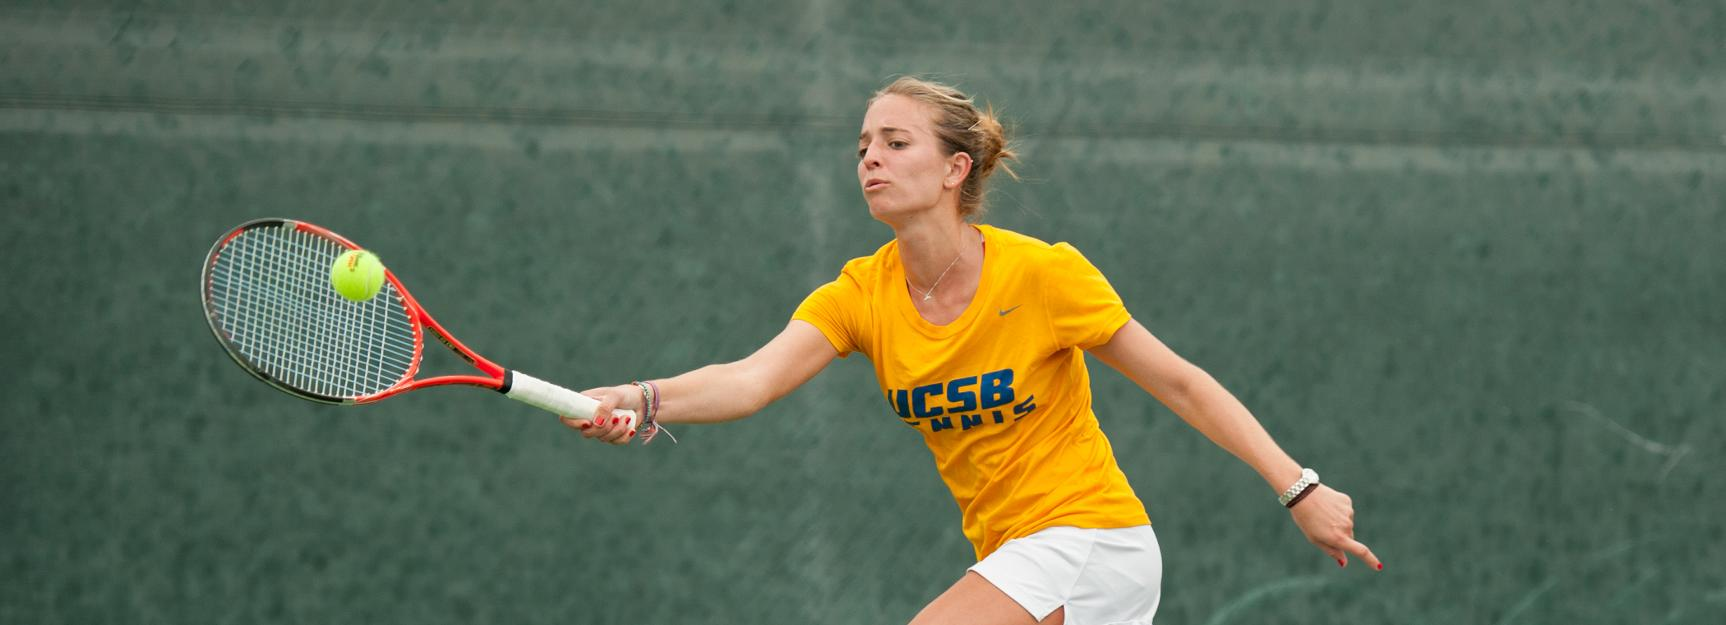 UCSB Battles Against No. 64 Santa Clara; Endures Another Tough 4-3 Loss